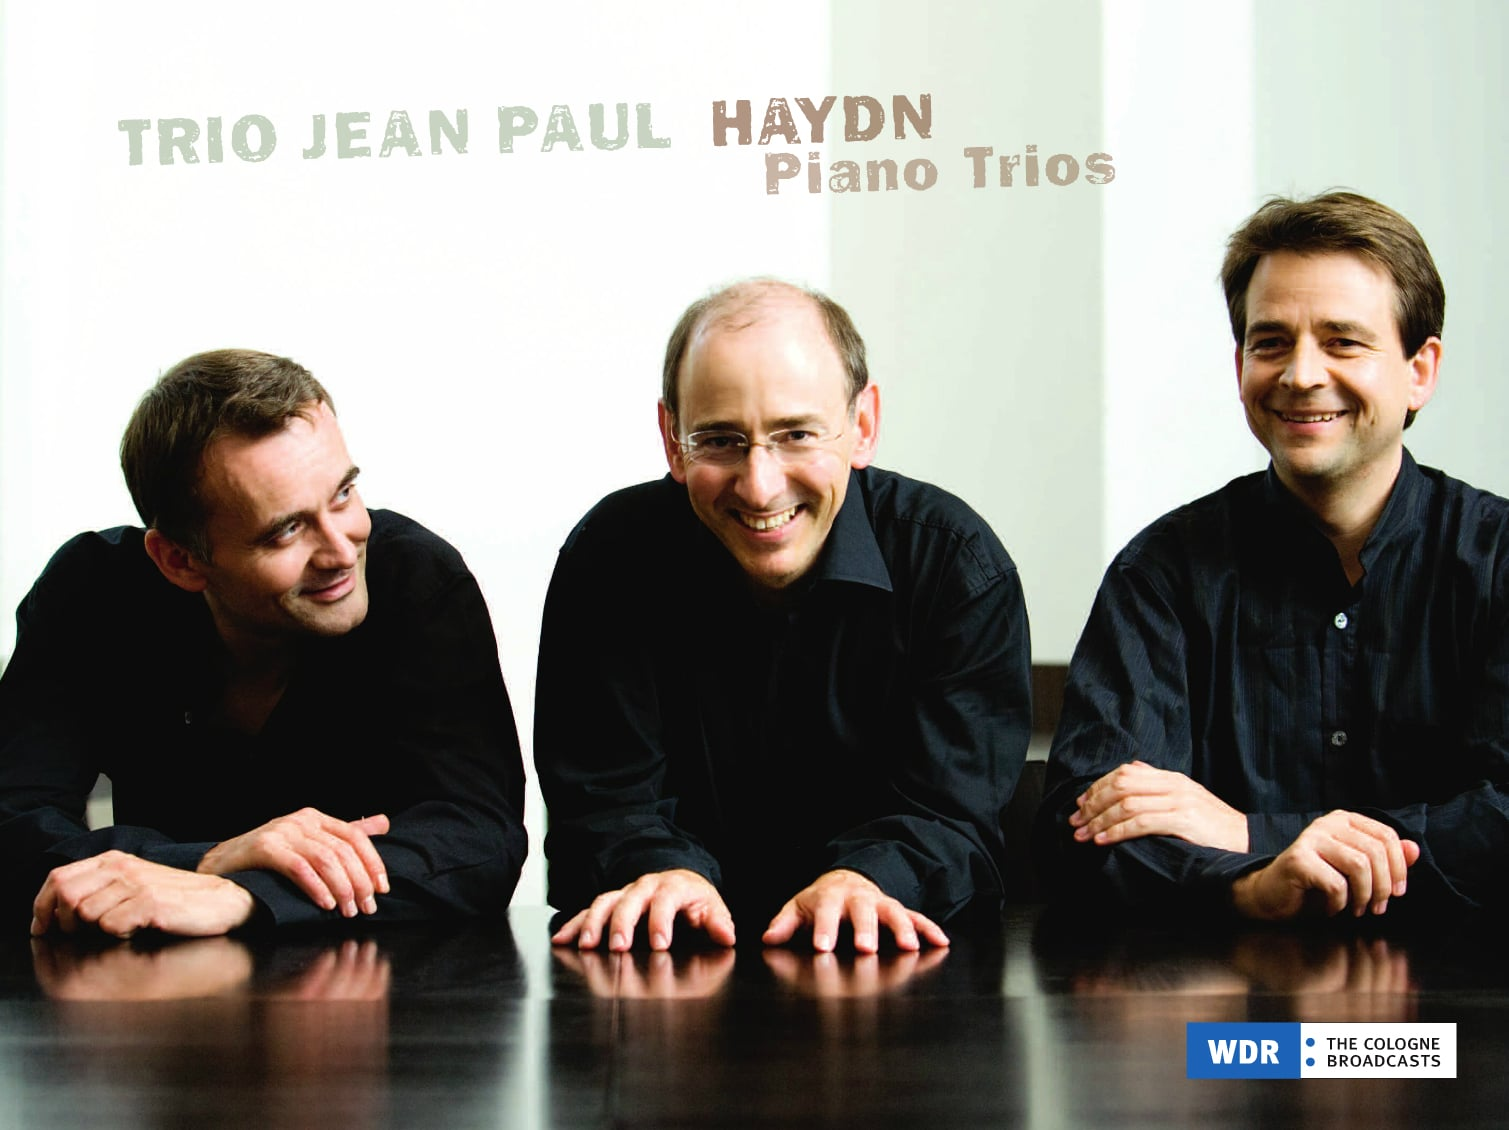 "Inlay ""Trio Jean Paul: Haydn Piano Trios"", Seite 1. © 2014 Avi-Service for music, Cologne / Germany ・ Licensend by WDR media group GmbH ・Fotos © Irene Zandel ・ Coverdesign: www.BABELgum.de"